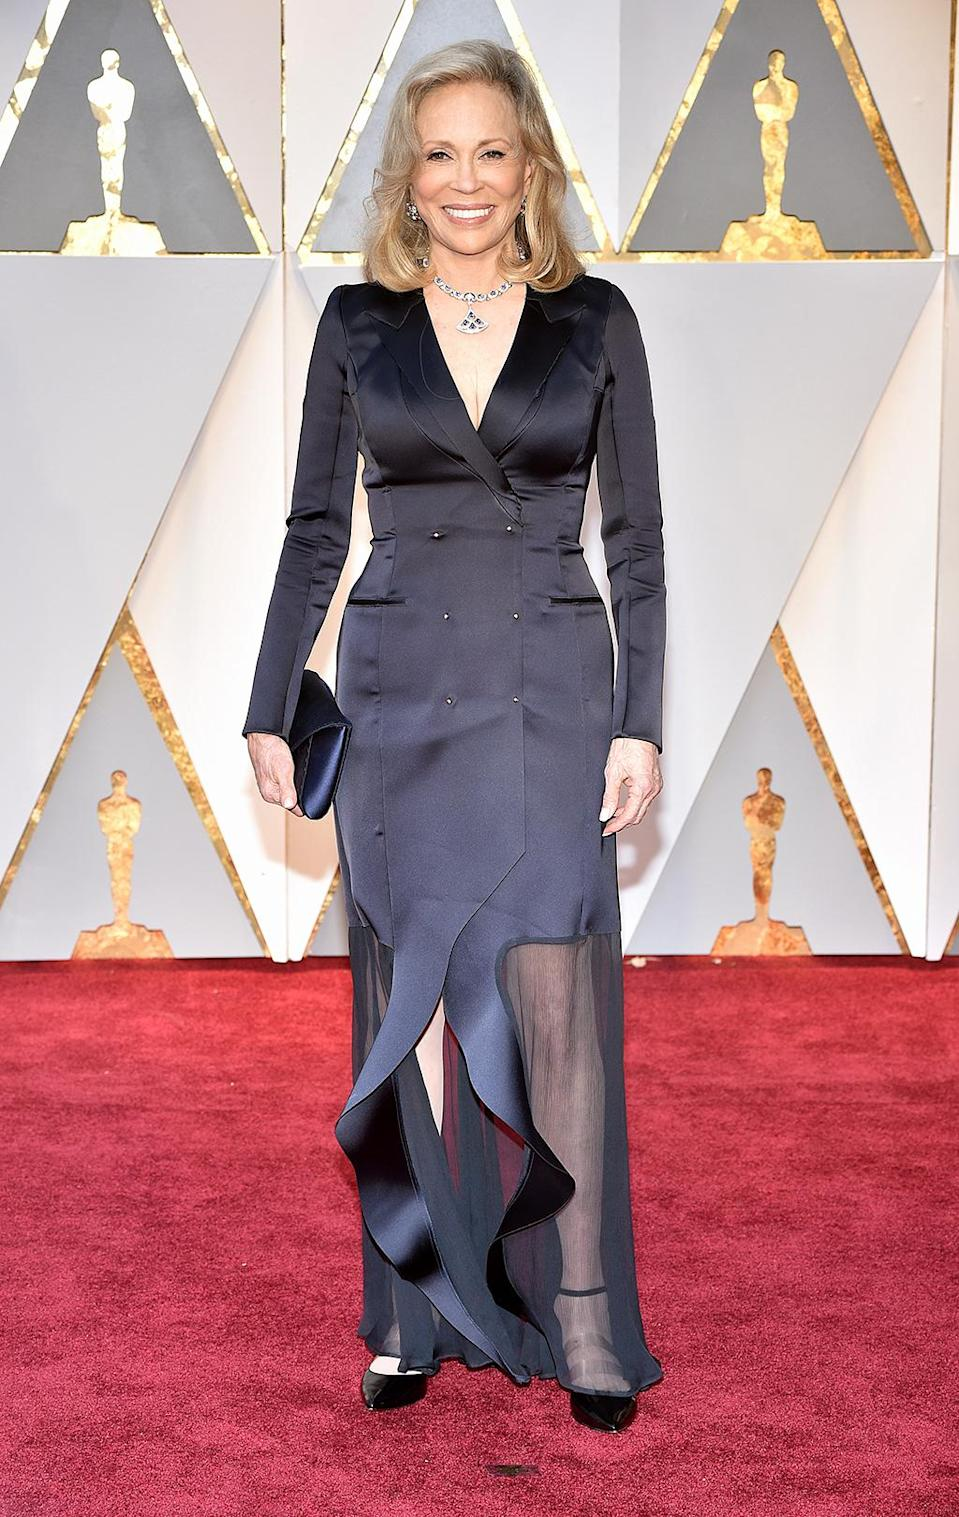 <p>Faye Dunaway attends the 89th Annual Academy Awards at Hollywood & Highland Center on Feb. 26, 2017. (Photo by Kevin Mazur/Getty Images) </p>